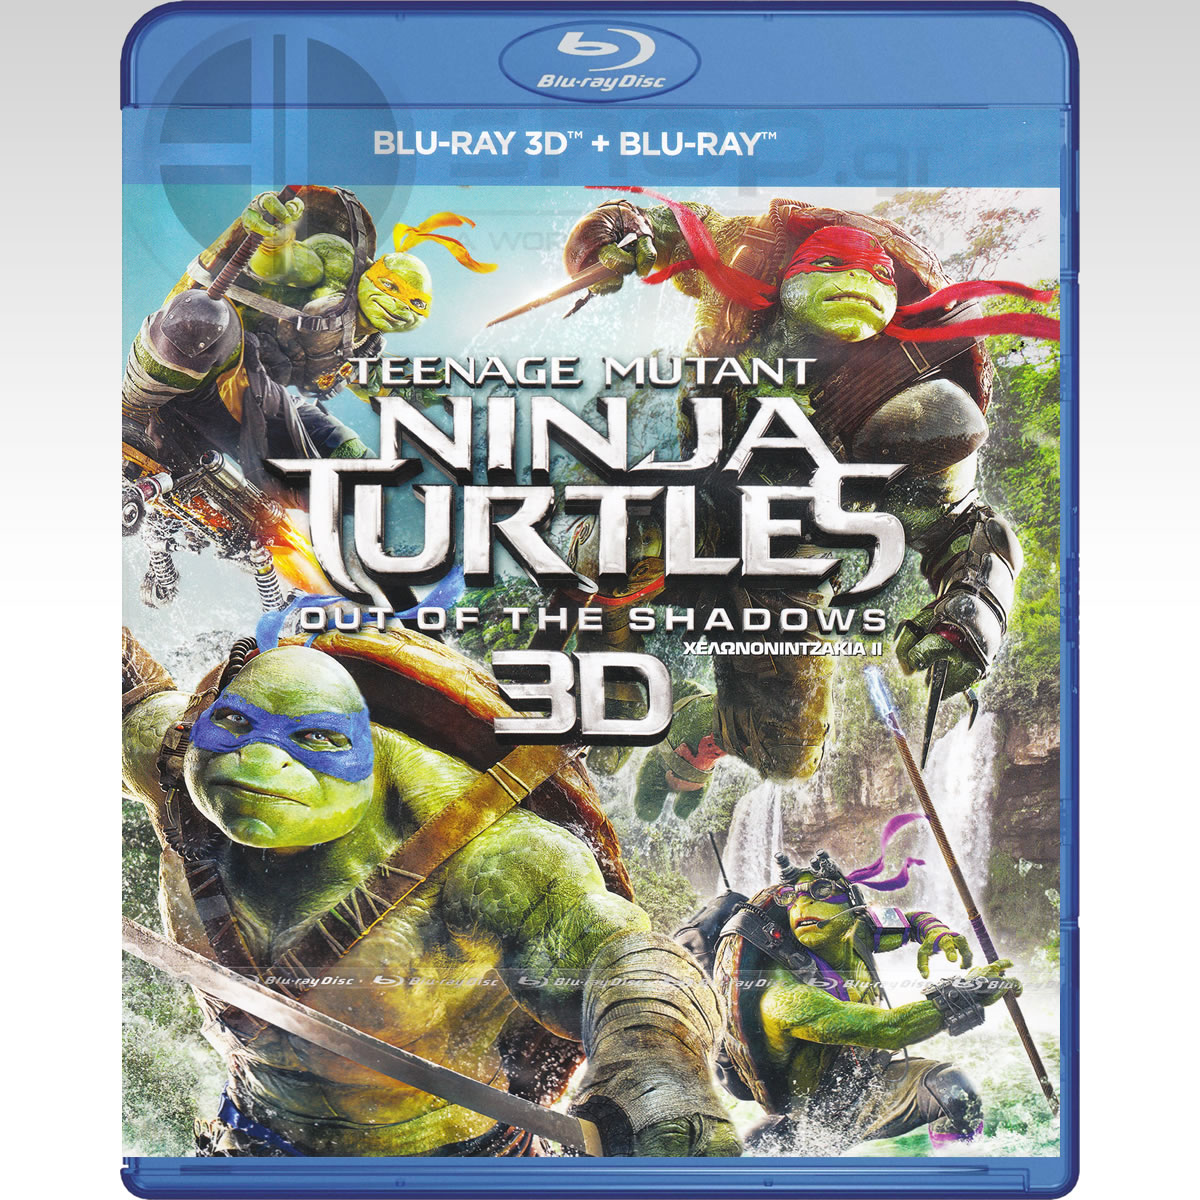 TEENAGE MUTANT NINJA TURTLES 2: OUT OF THE SHADOWS 3D - ΤΑ ΧΕΛΩΝΟΝΙΝΤΖΑΚΙΑ 2 3D (BLU-RAY 3D + BLU-RAY)